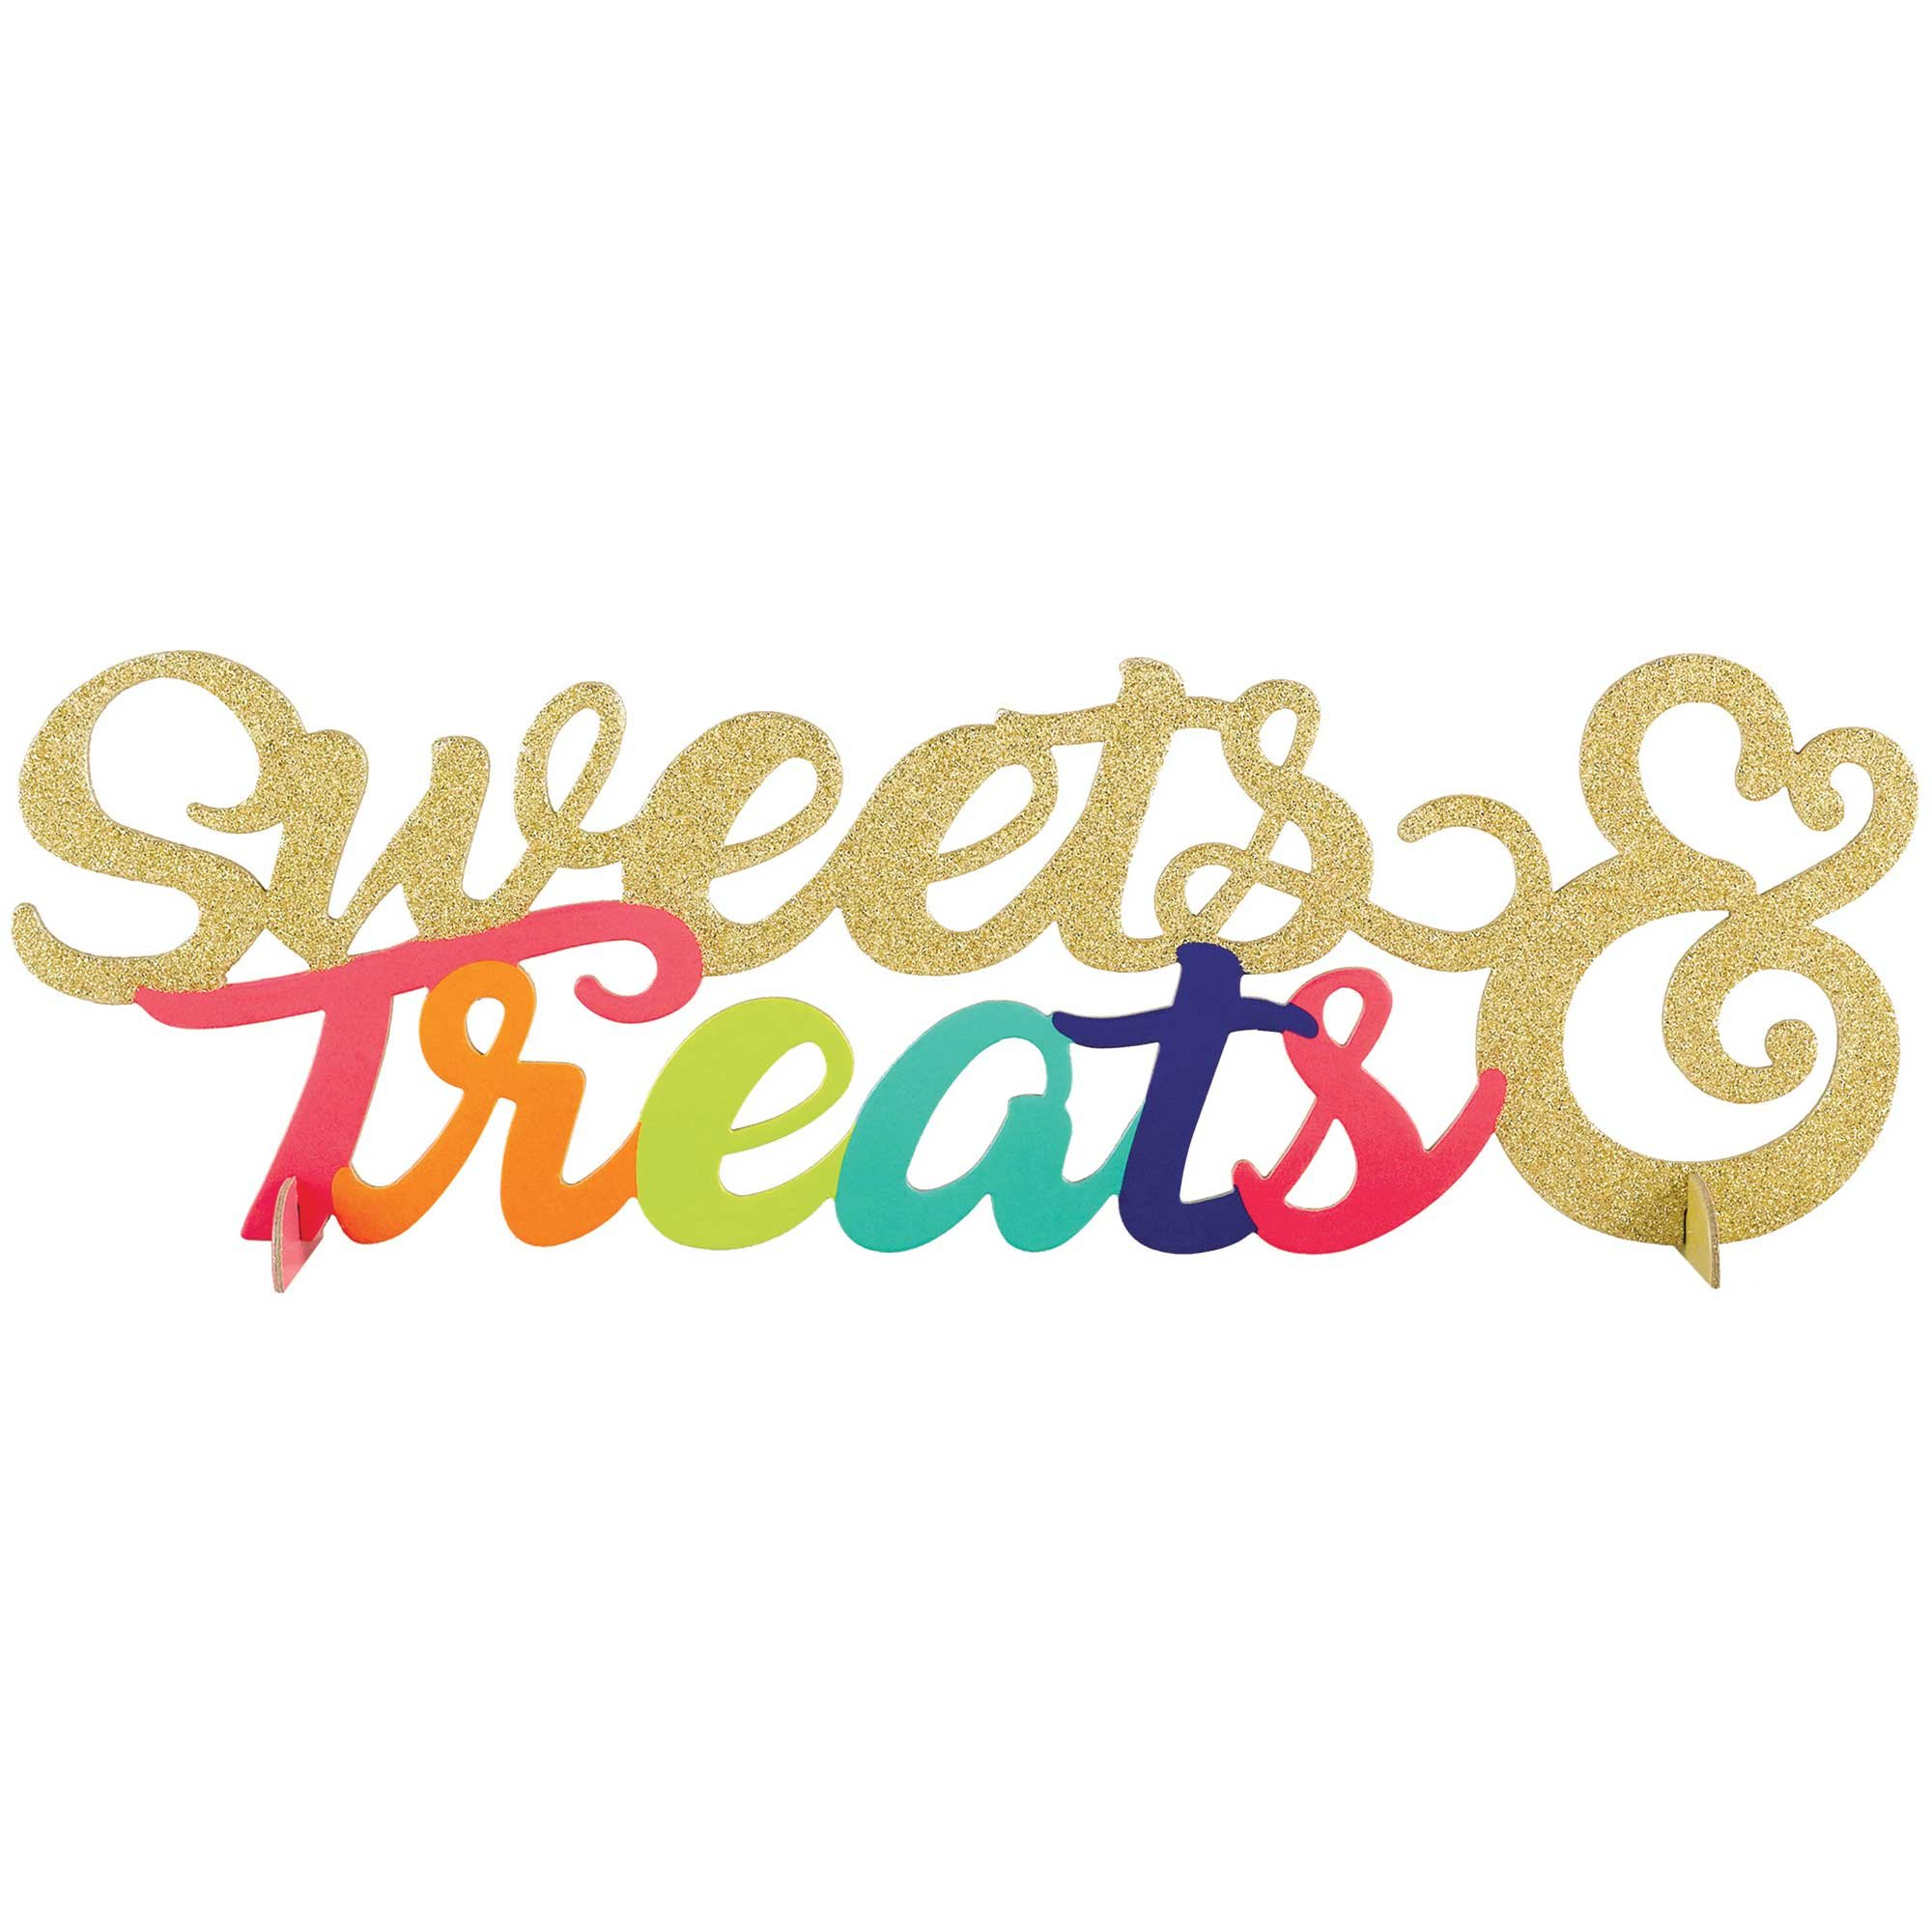 Sweets & Treats Glittered Centrepiece